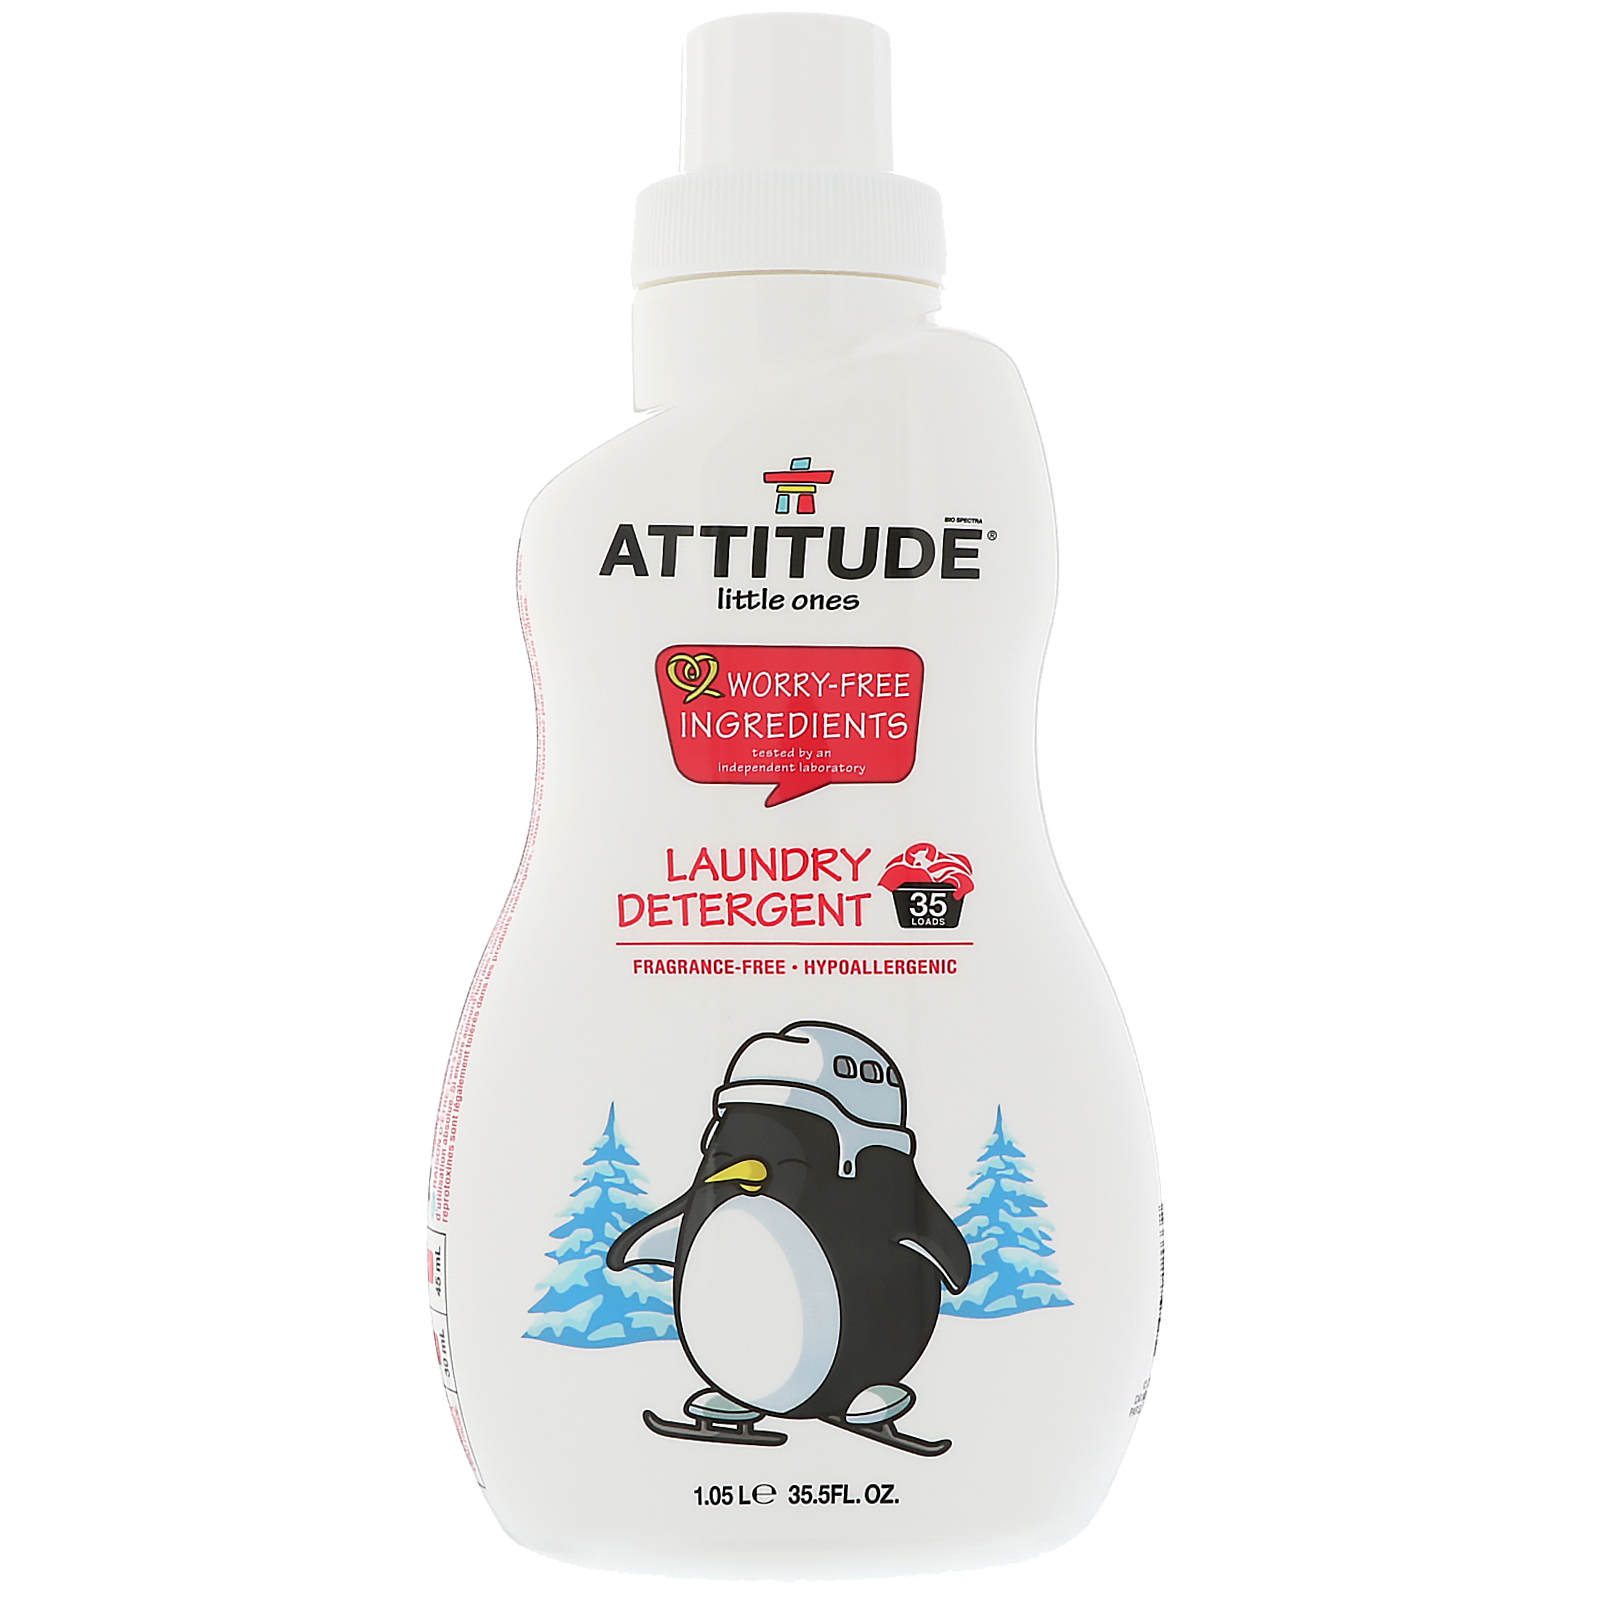 Attitude Little Ones Laundry Detergent Fragrance Free 355 Fl Oz Pure Baby Liquid Refill Buy 2 Get 3 700 Ml